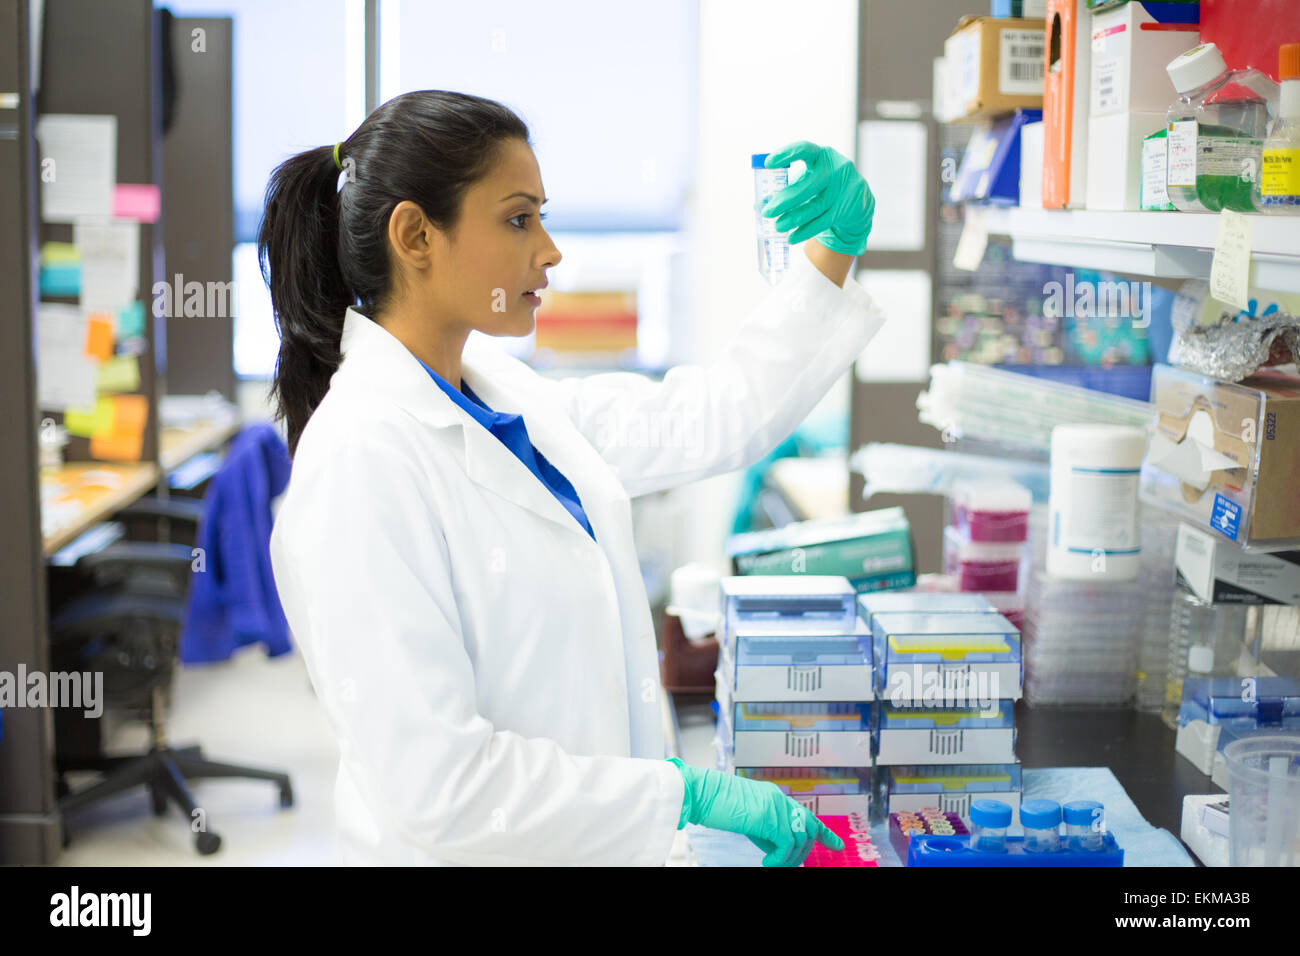 Closeup portrait, young scientist in white lab coat doing experiments in lab, academic sector. - Stock Image